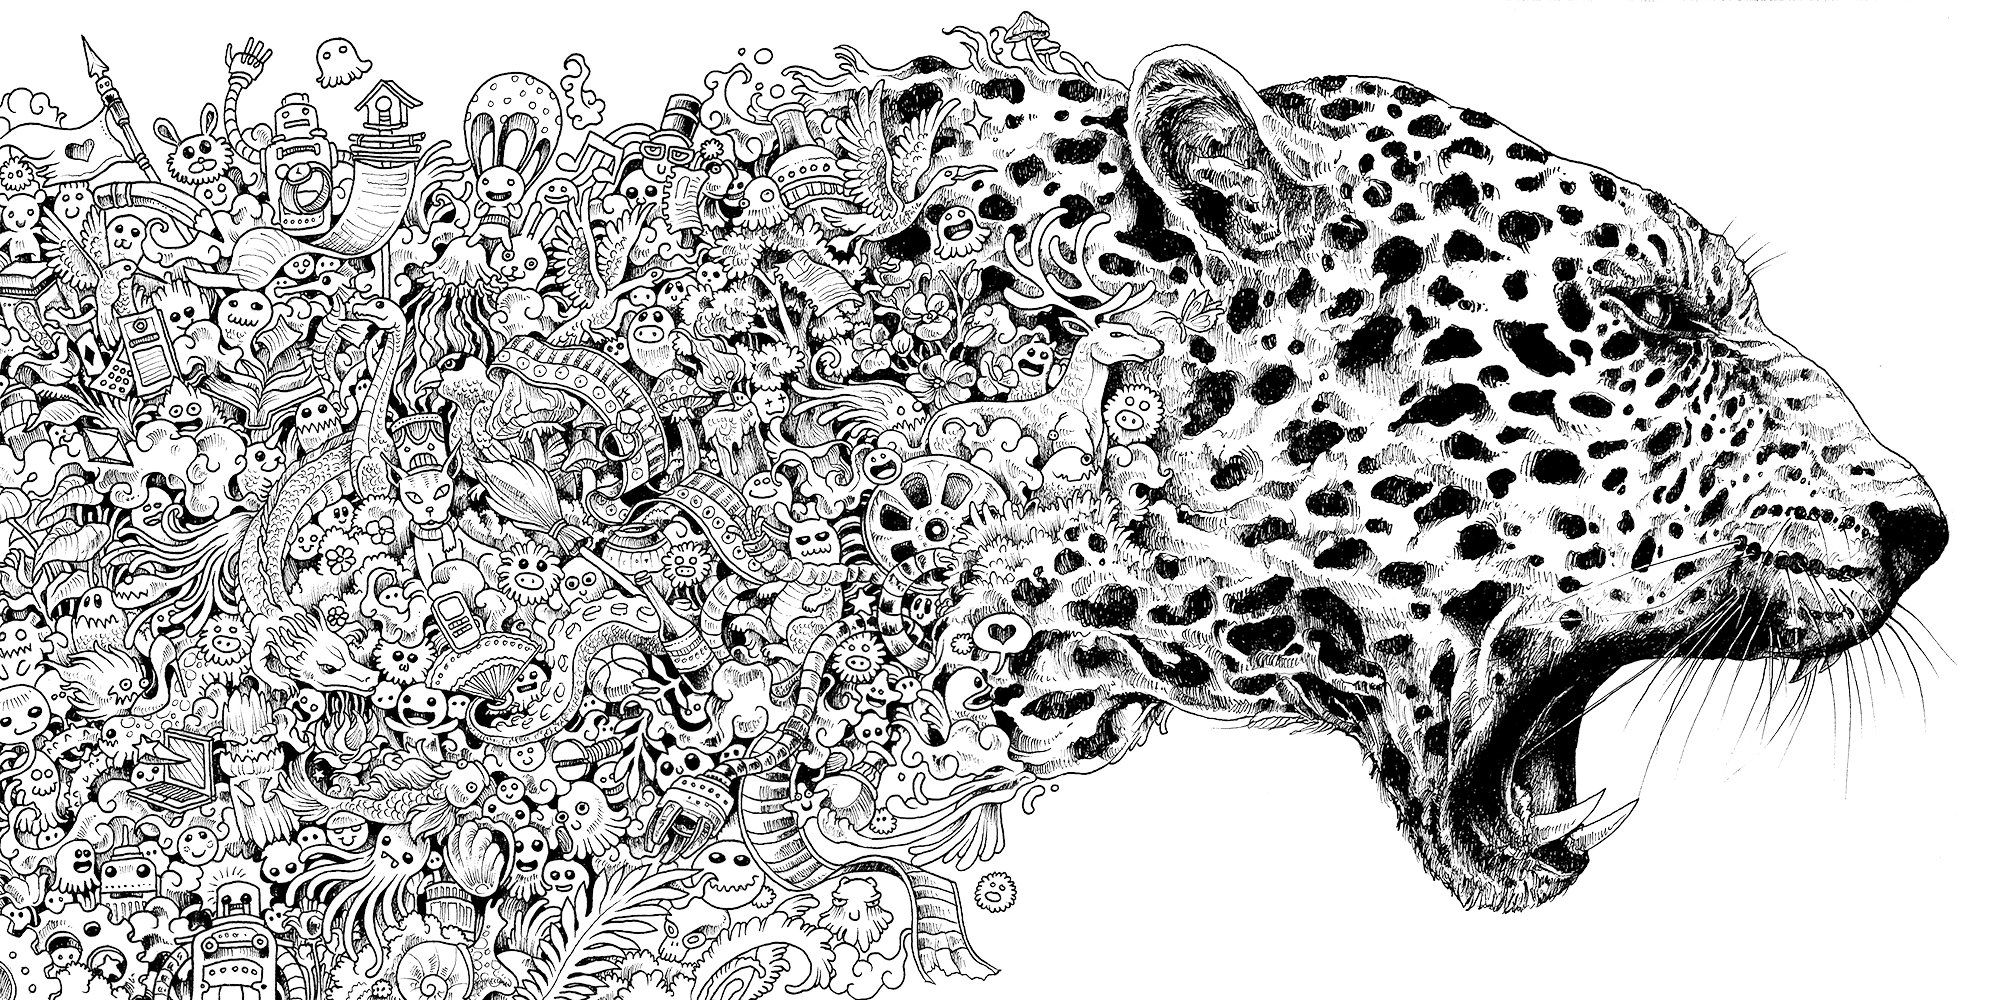 extreme coloring pages imagimorphia an extreme coloring and search challenge pages coloring extreme